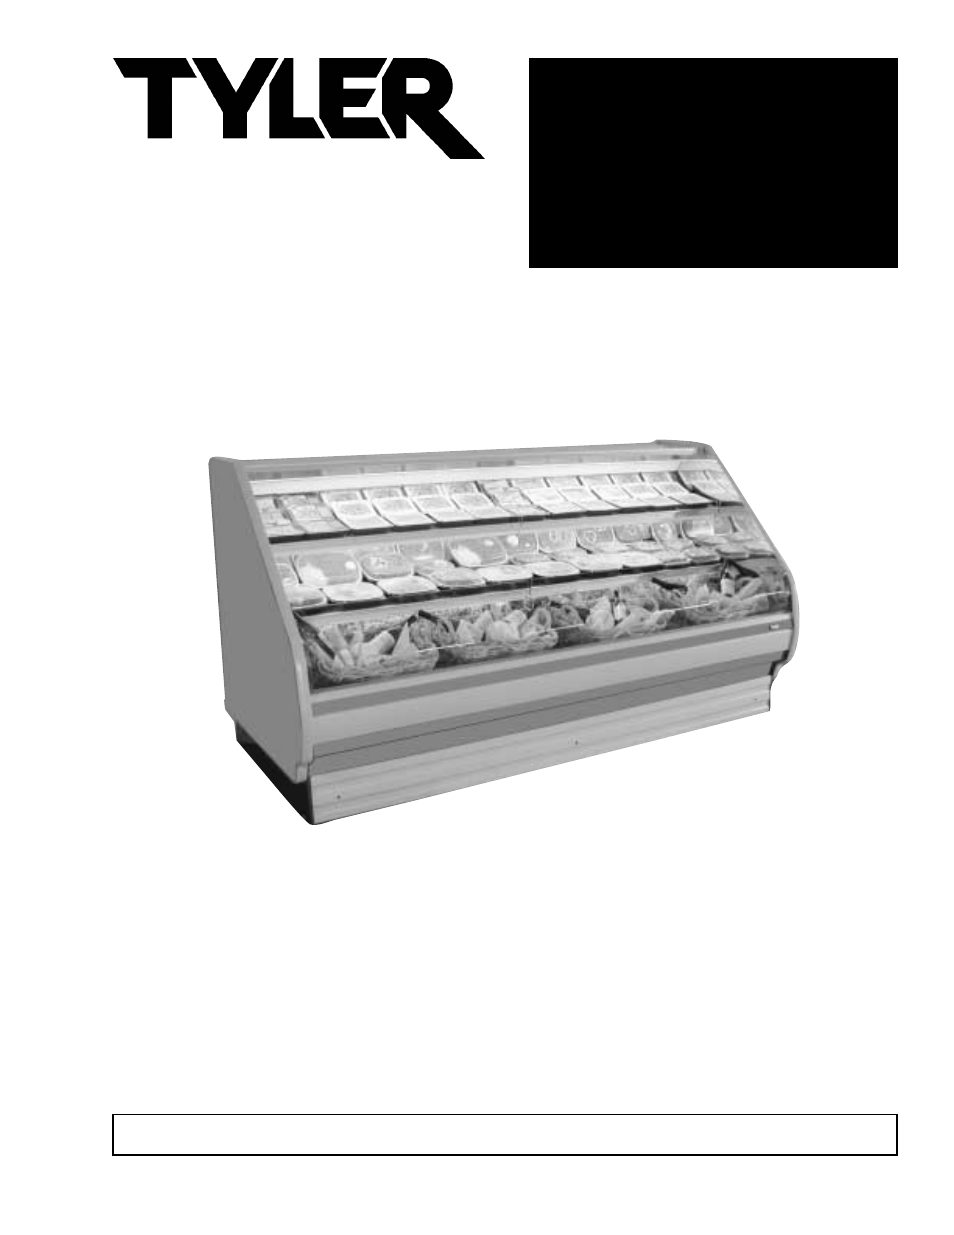 tyler refrigeration nssd user manual 19 pages rh manualsdir com